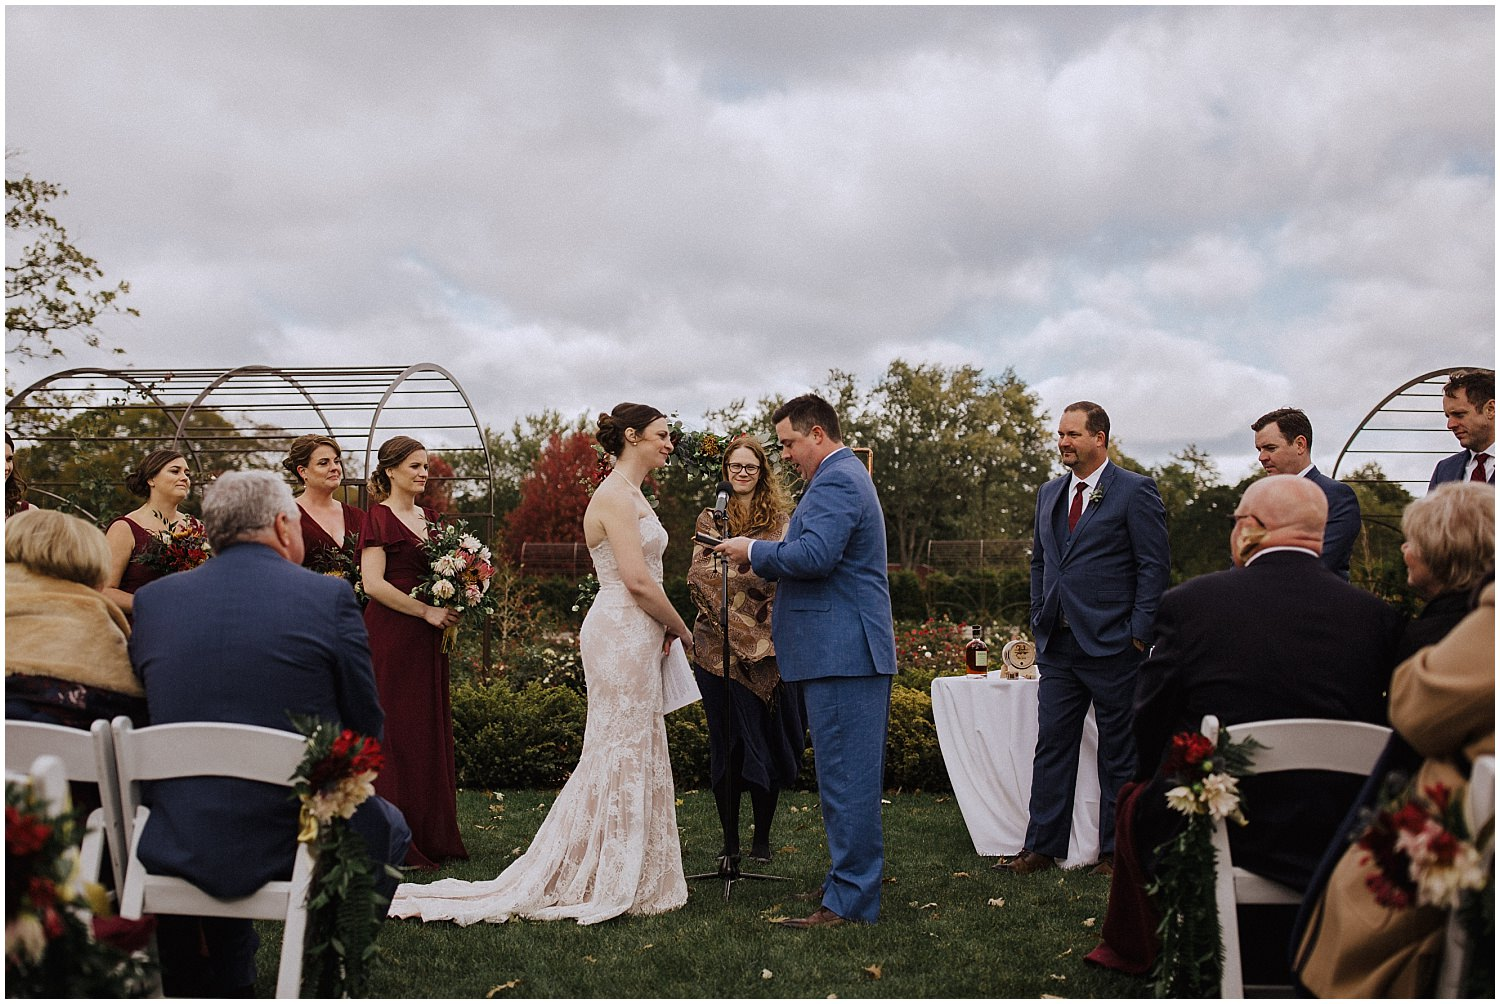 eloping with family Chicago wedding and elopement photographer Kyle Szeto